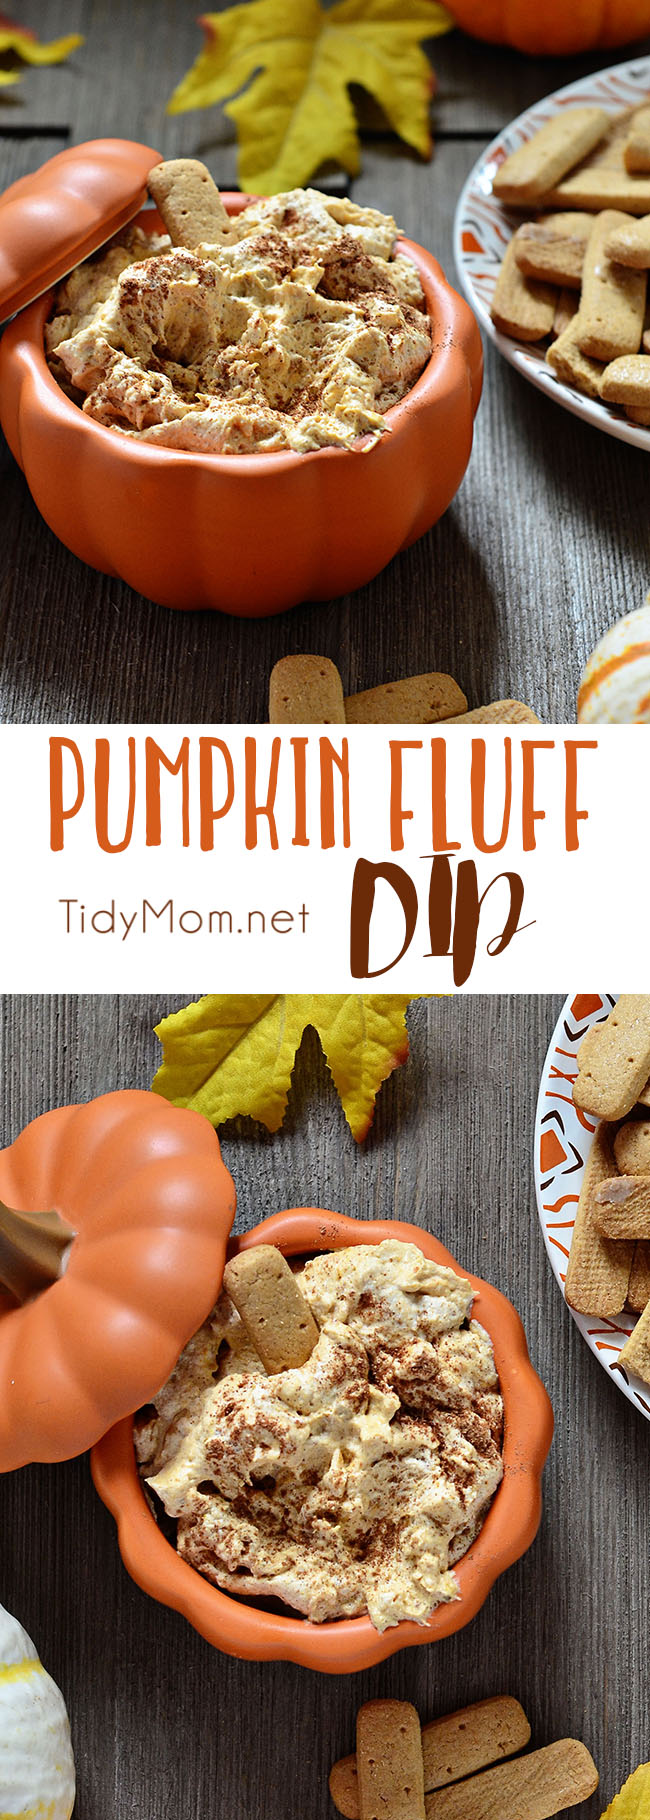 Pumpkin Fluff is a creamy, fluffy favorite fall treat. Serve with graham crackers or stuff into a cannoli shell or just dig in with a spoon. It's full of fiber, and if you use sugar-free/ fat-free pudding mix, Cool Whip Lite and 1% milk it's a low cal treat you don't have to feel guilty eating! Pumpkin Fluff Dip Recipe and video at TidyMom.net #pumpkin #dip